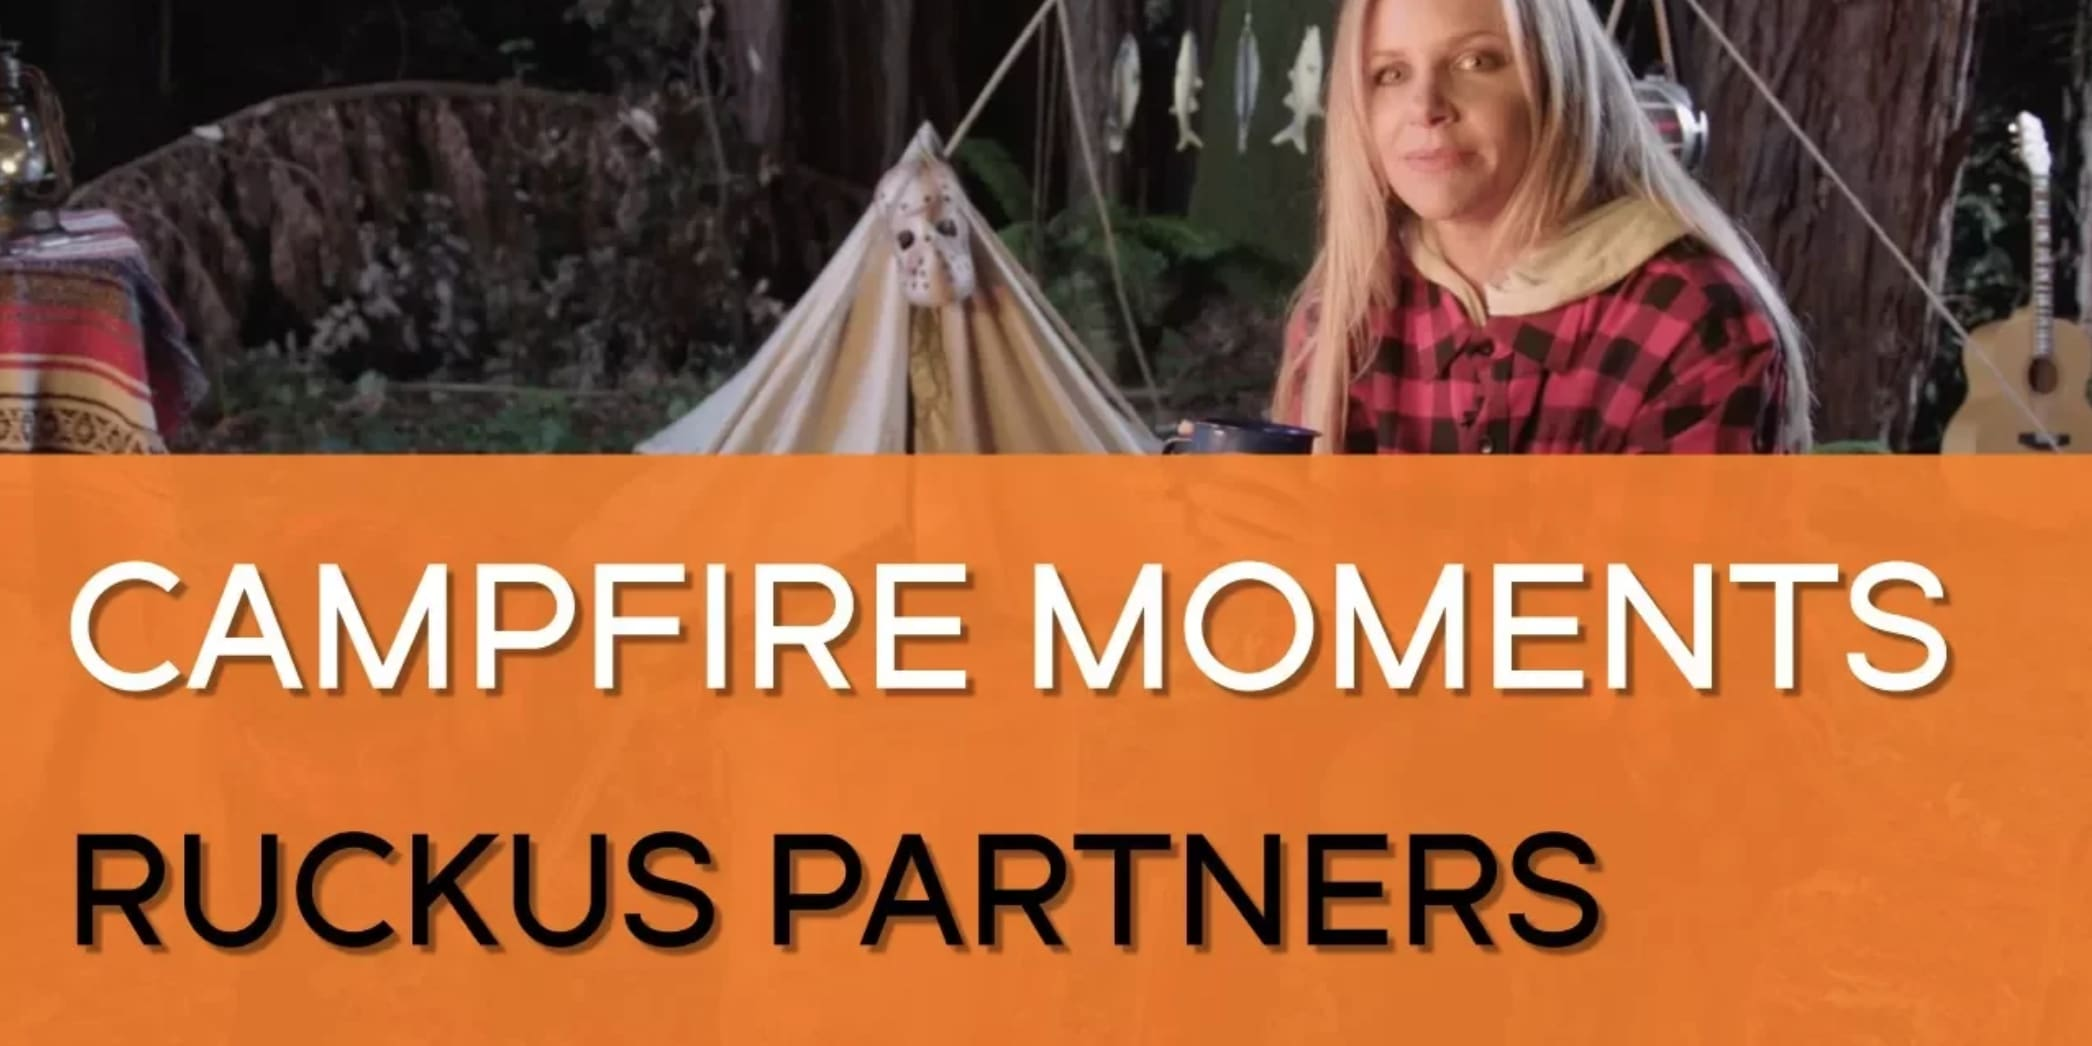 Ruckus Partners: Campfire Moments